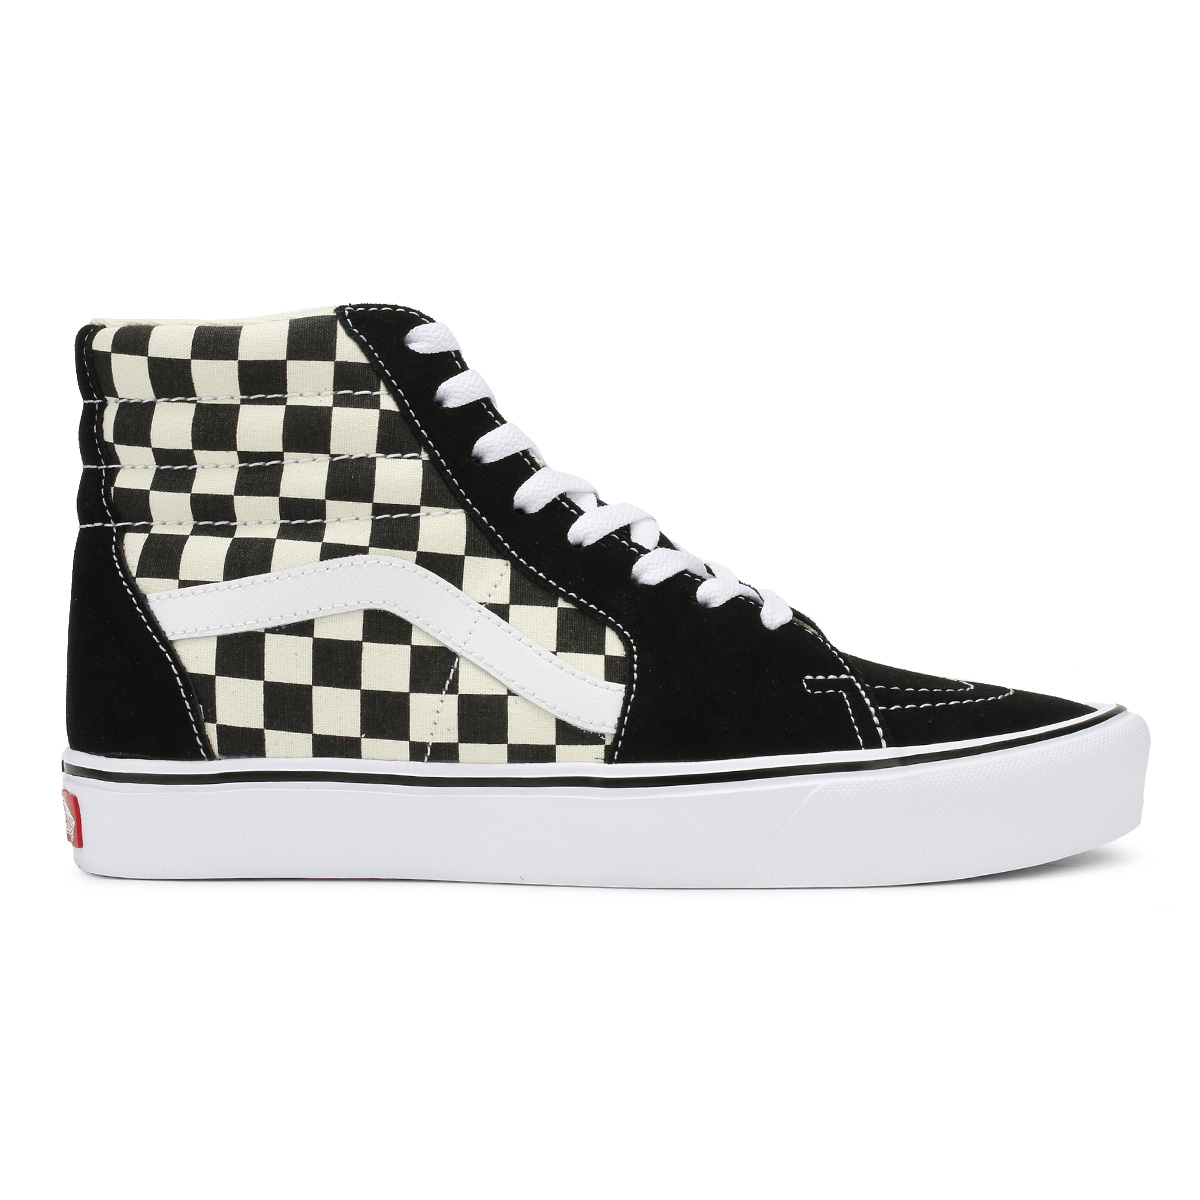 0f12bfb6d44a93 Vans Unisex Black   White Trainers Checkerboard SK8-Hi Lite Lace Up Skate  Shoes